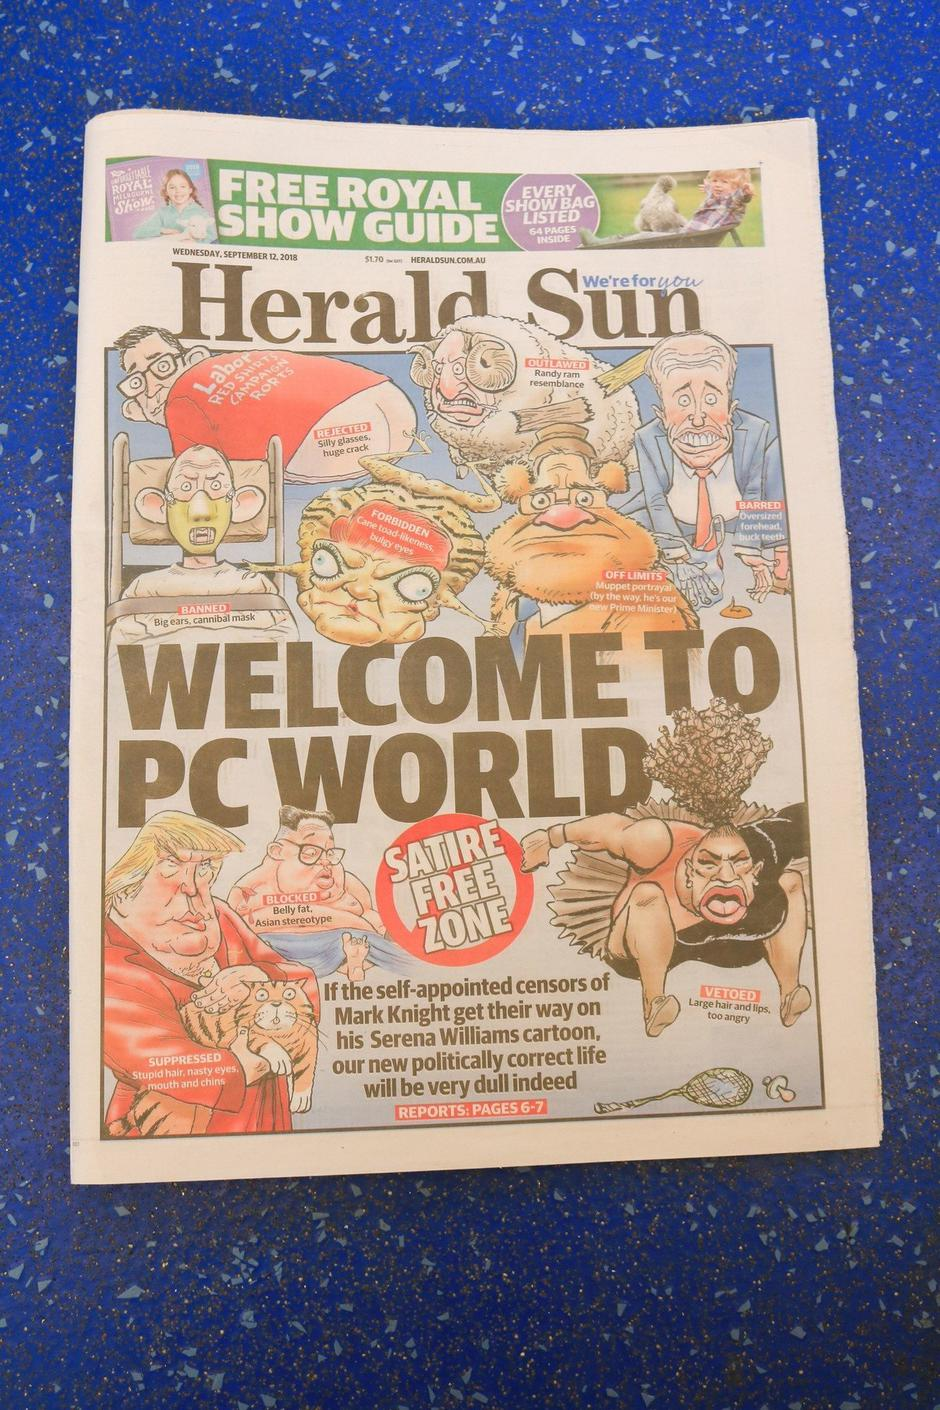 Herald Sun Responds to Serena Williams Cartoon, Adelaide, Australia - 12 Sep 2018 | Autor: Profimedia